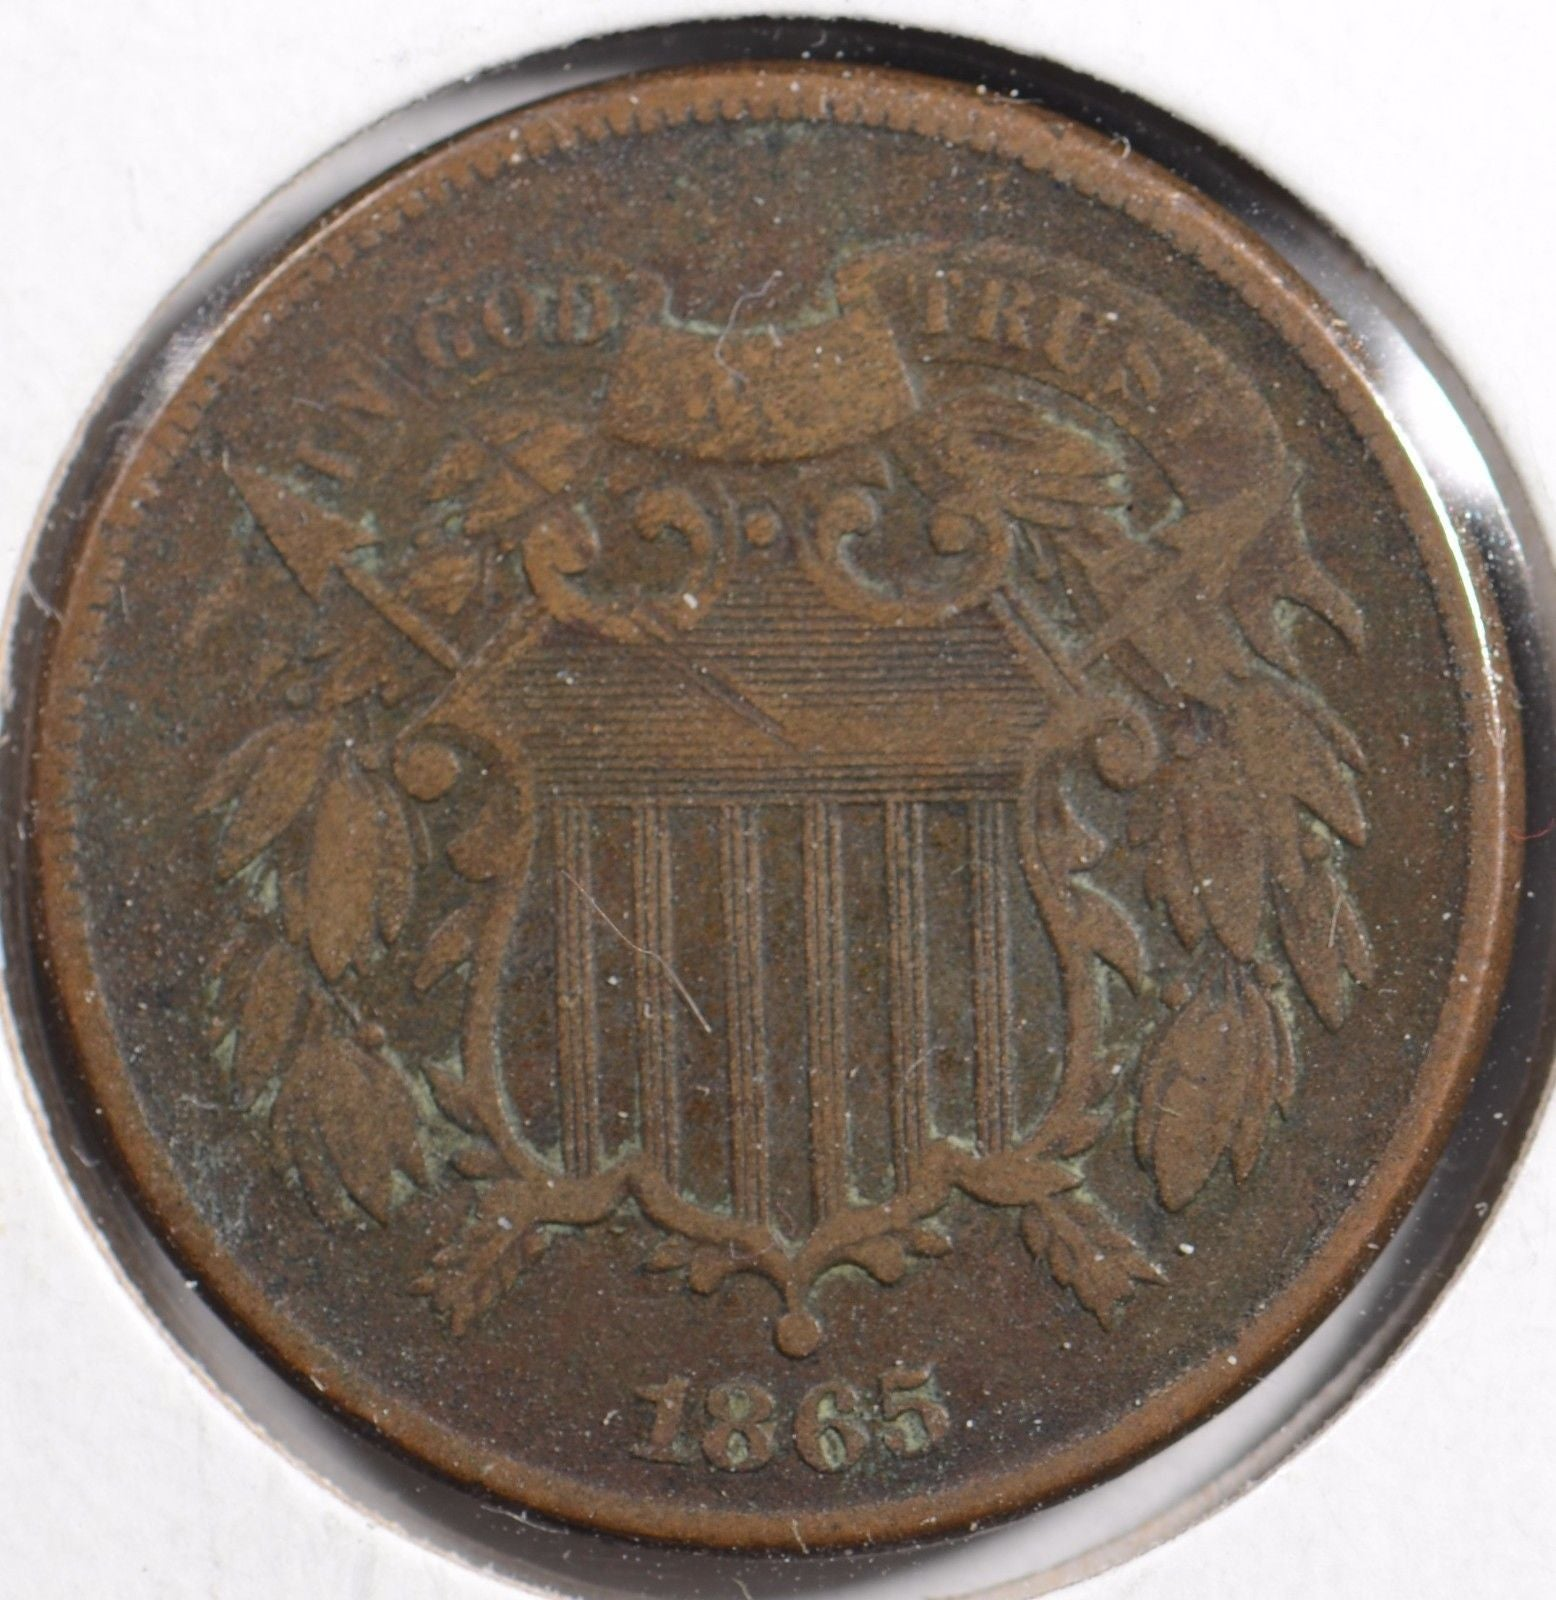 1865 Two Cent Piece Fine Condition #179295